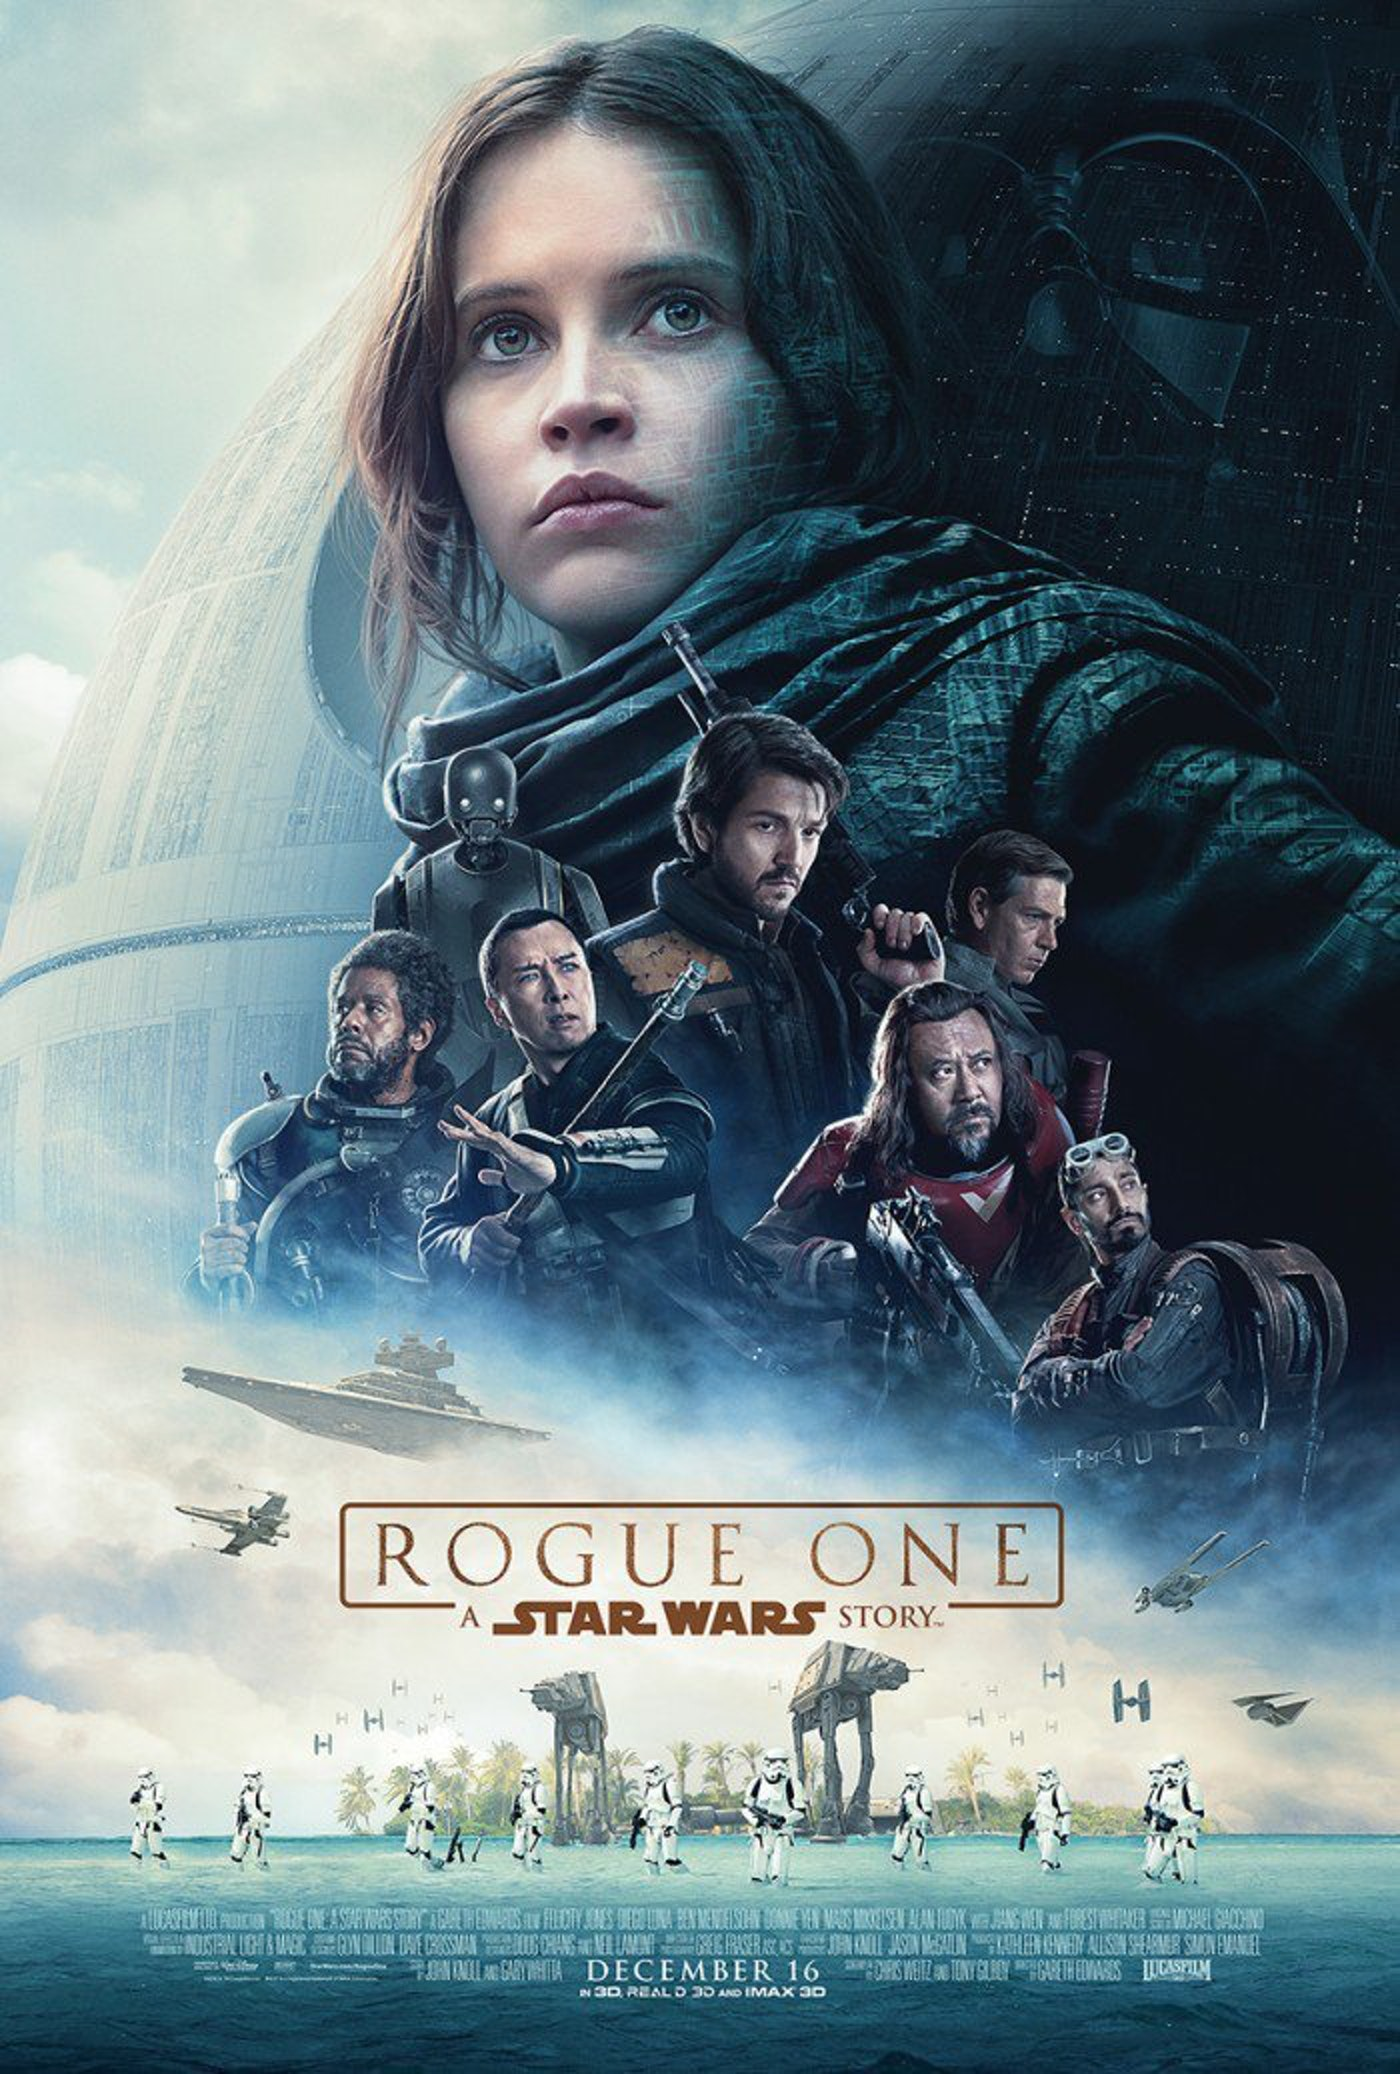 Here is the newest poster for 'Rogue One.'